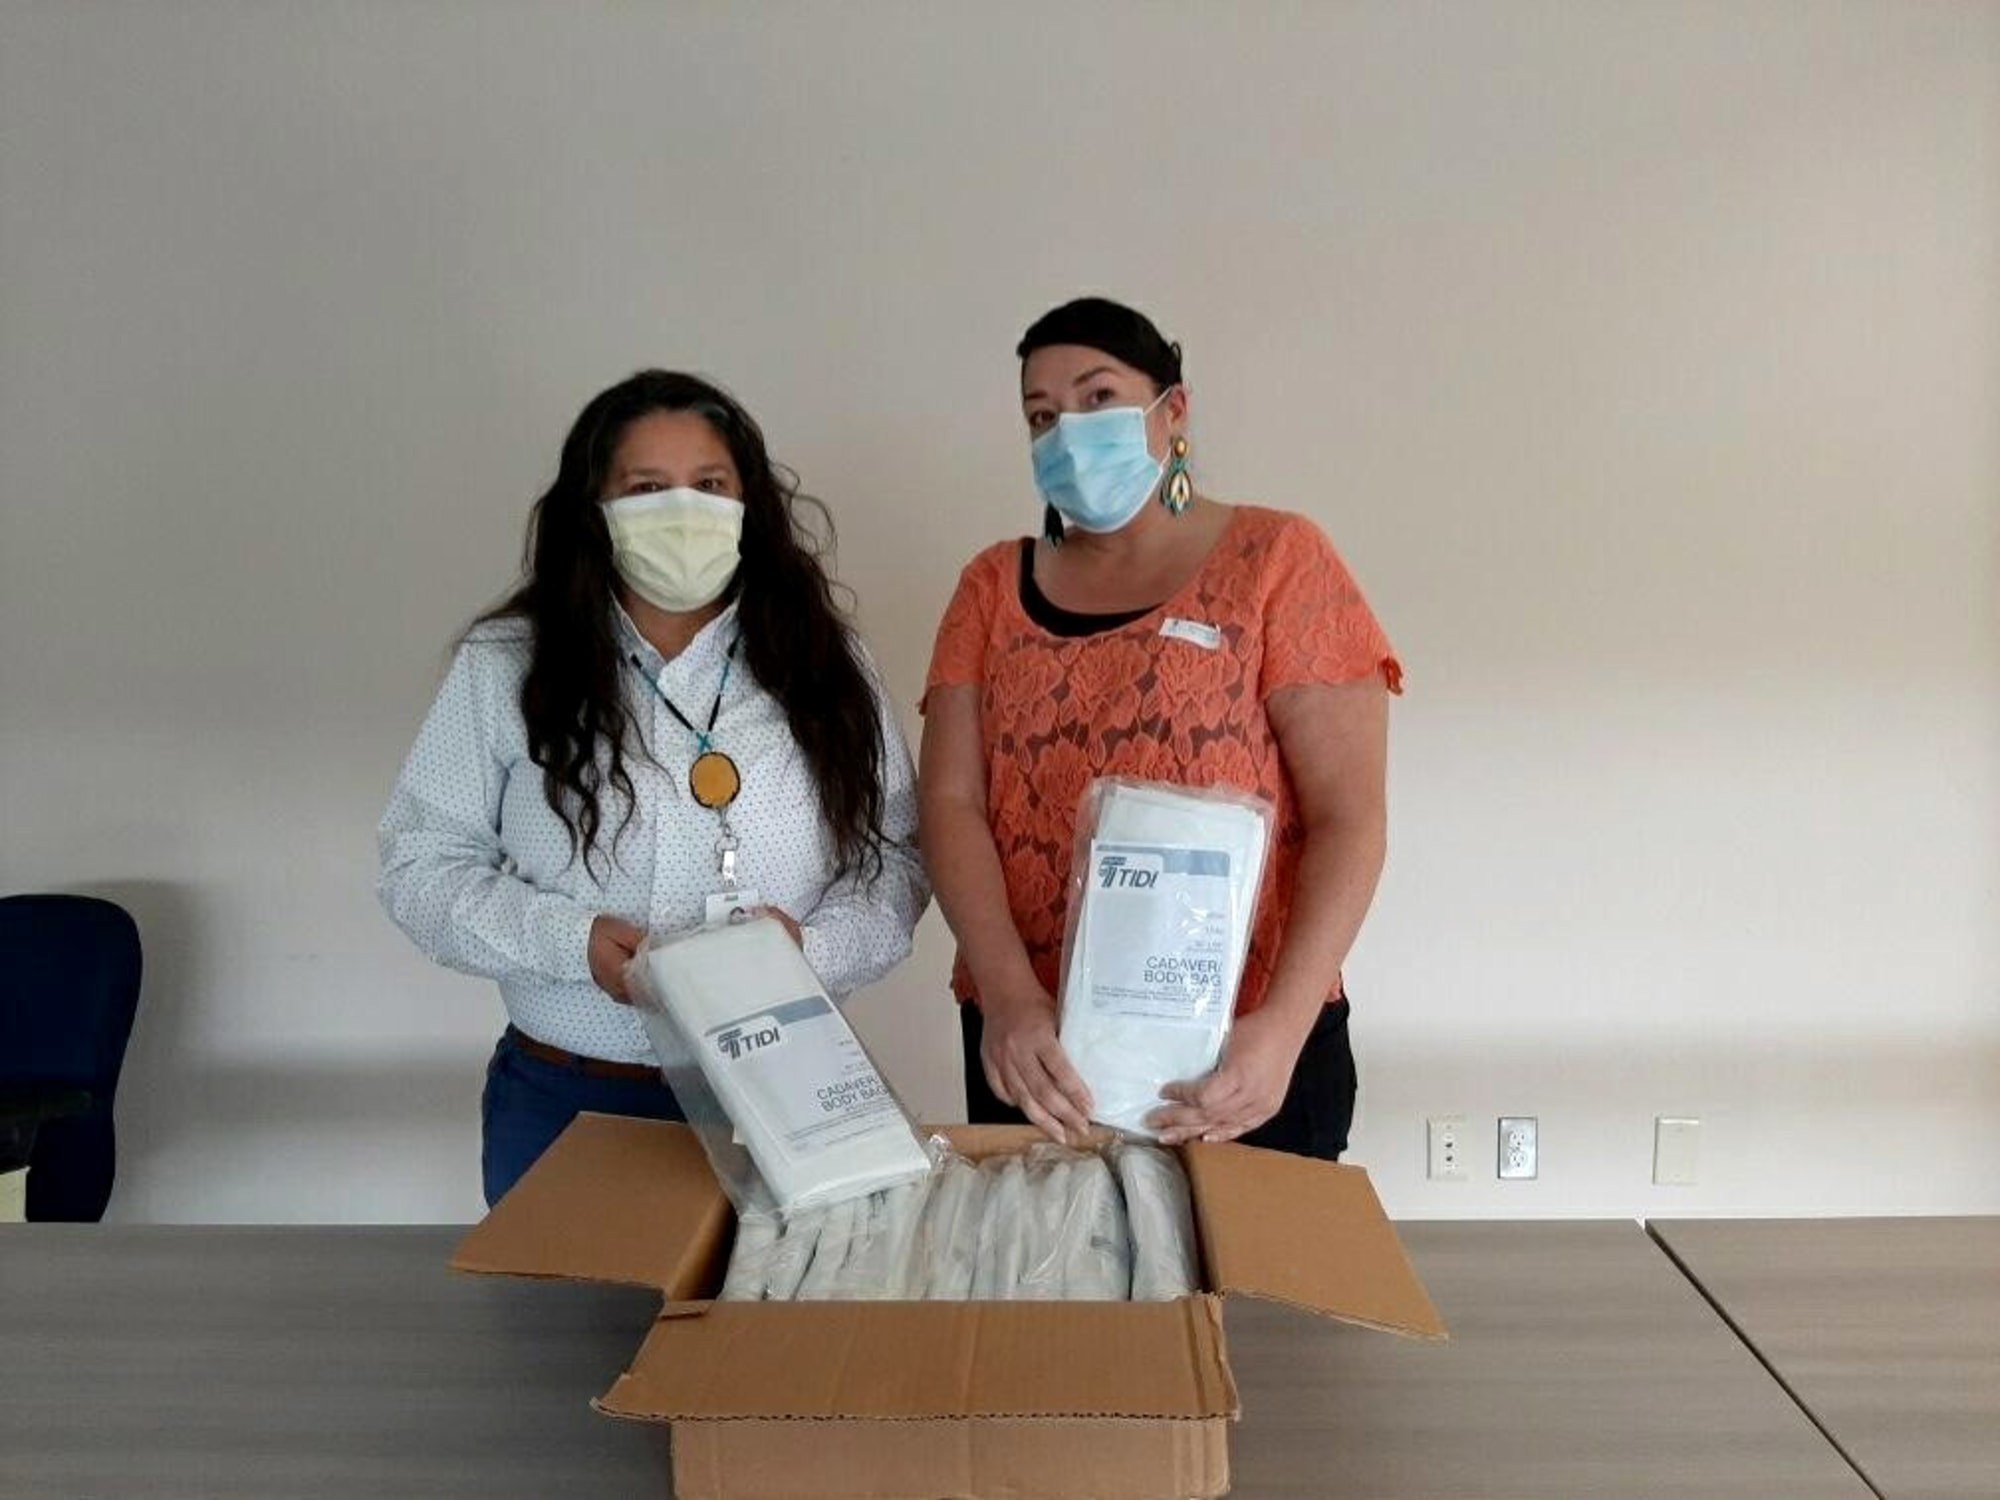 Native American health center asked for COVID-19 supplies. It got body bags instead